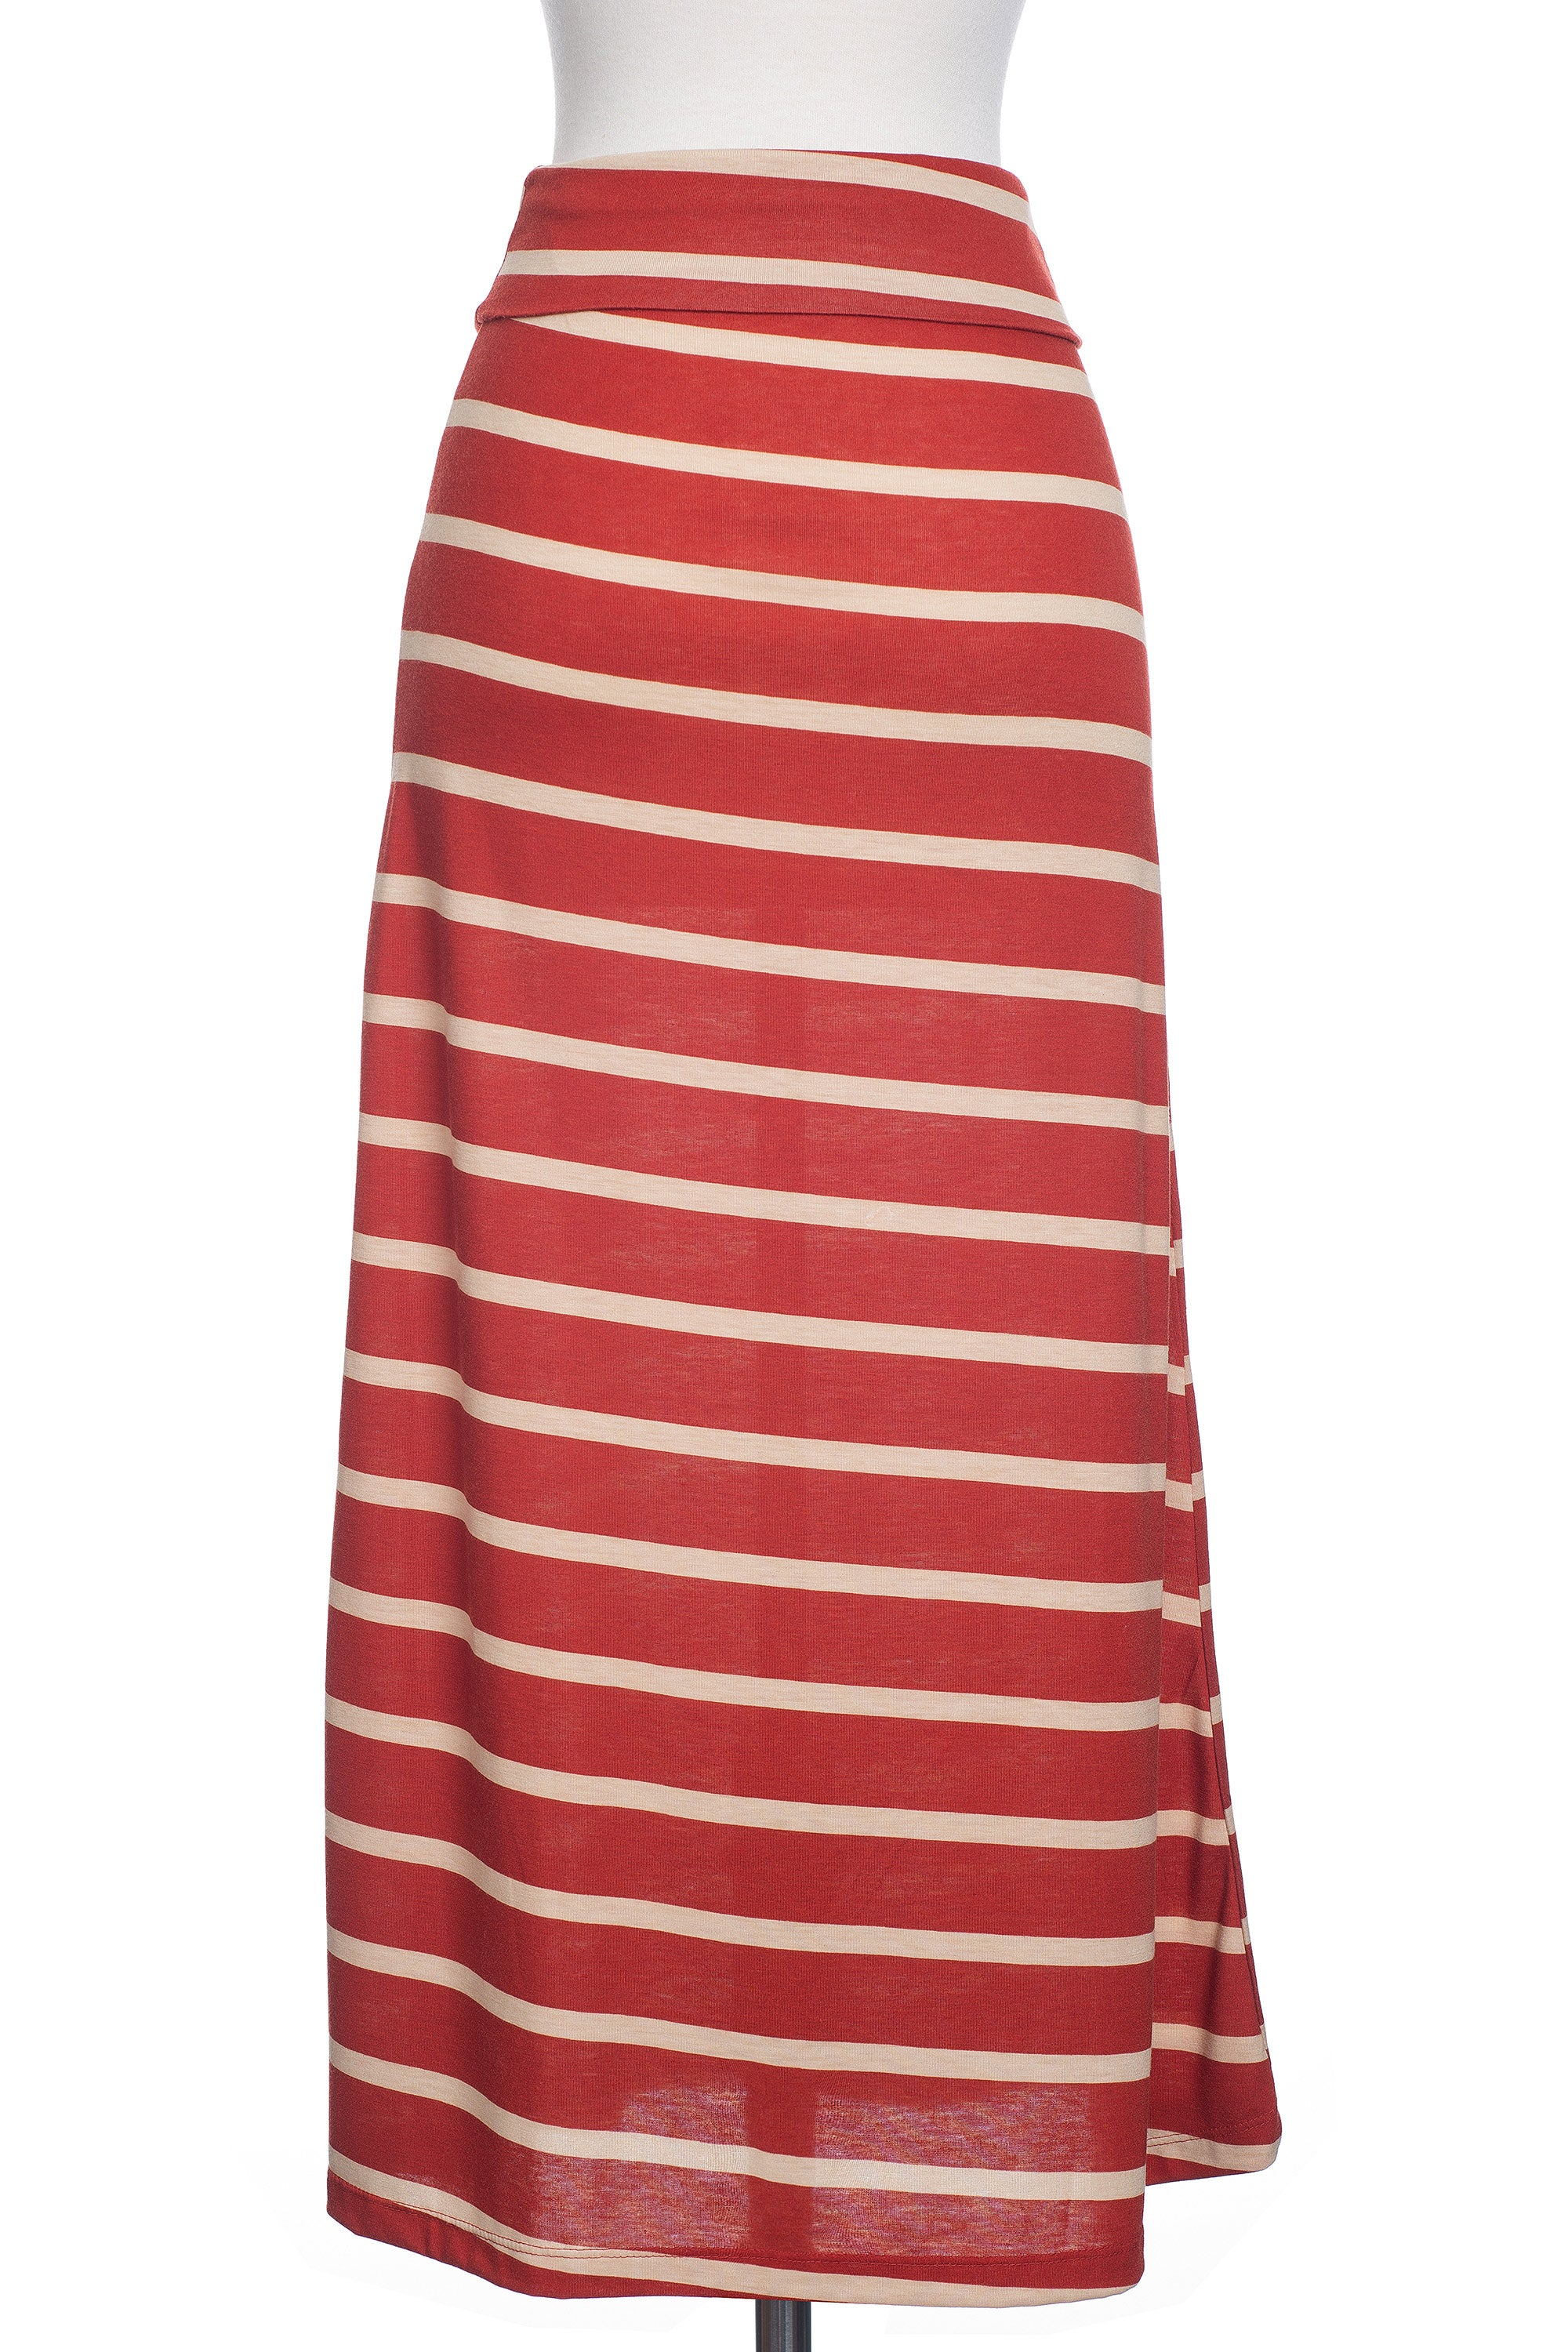 Type 3 Rusty Rows Maxi Skirt